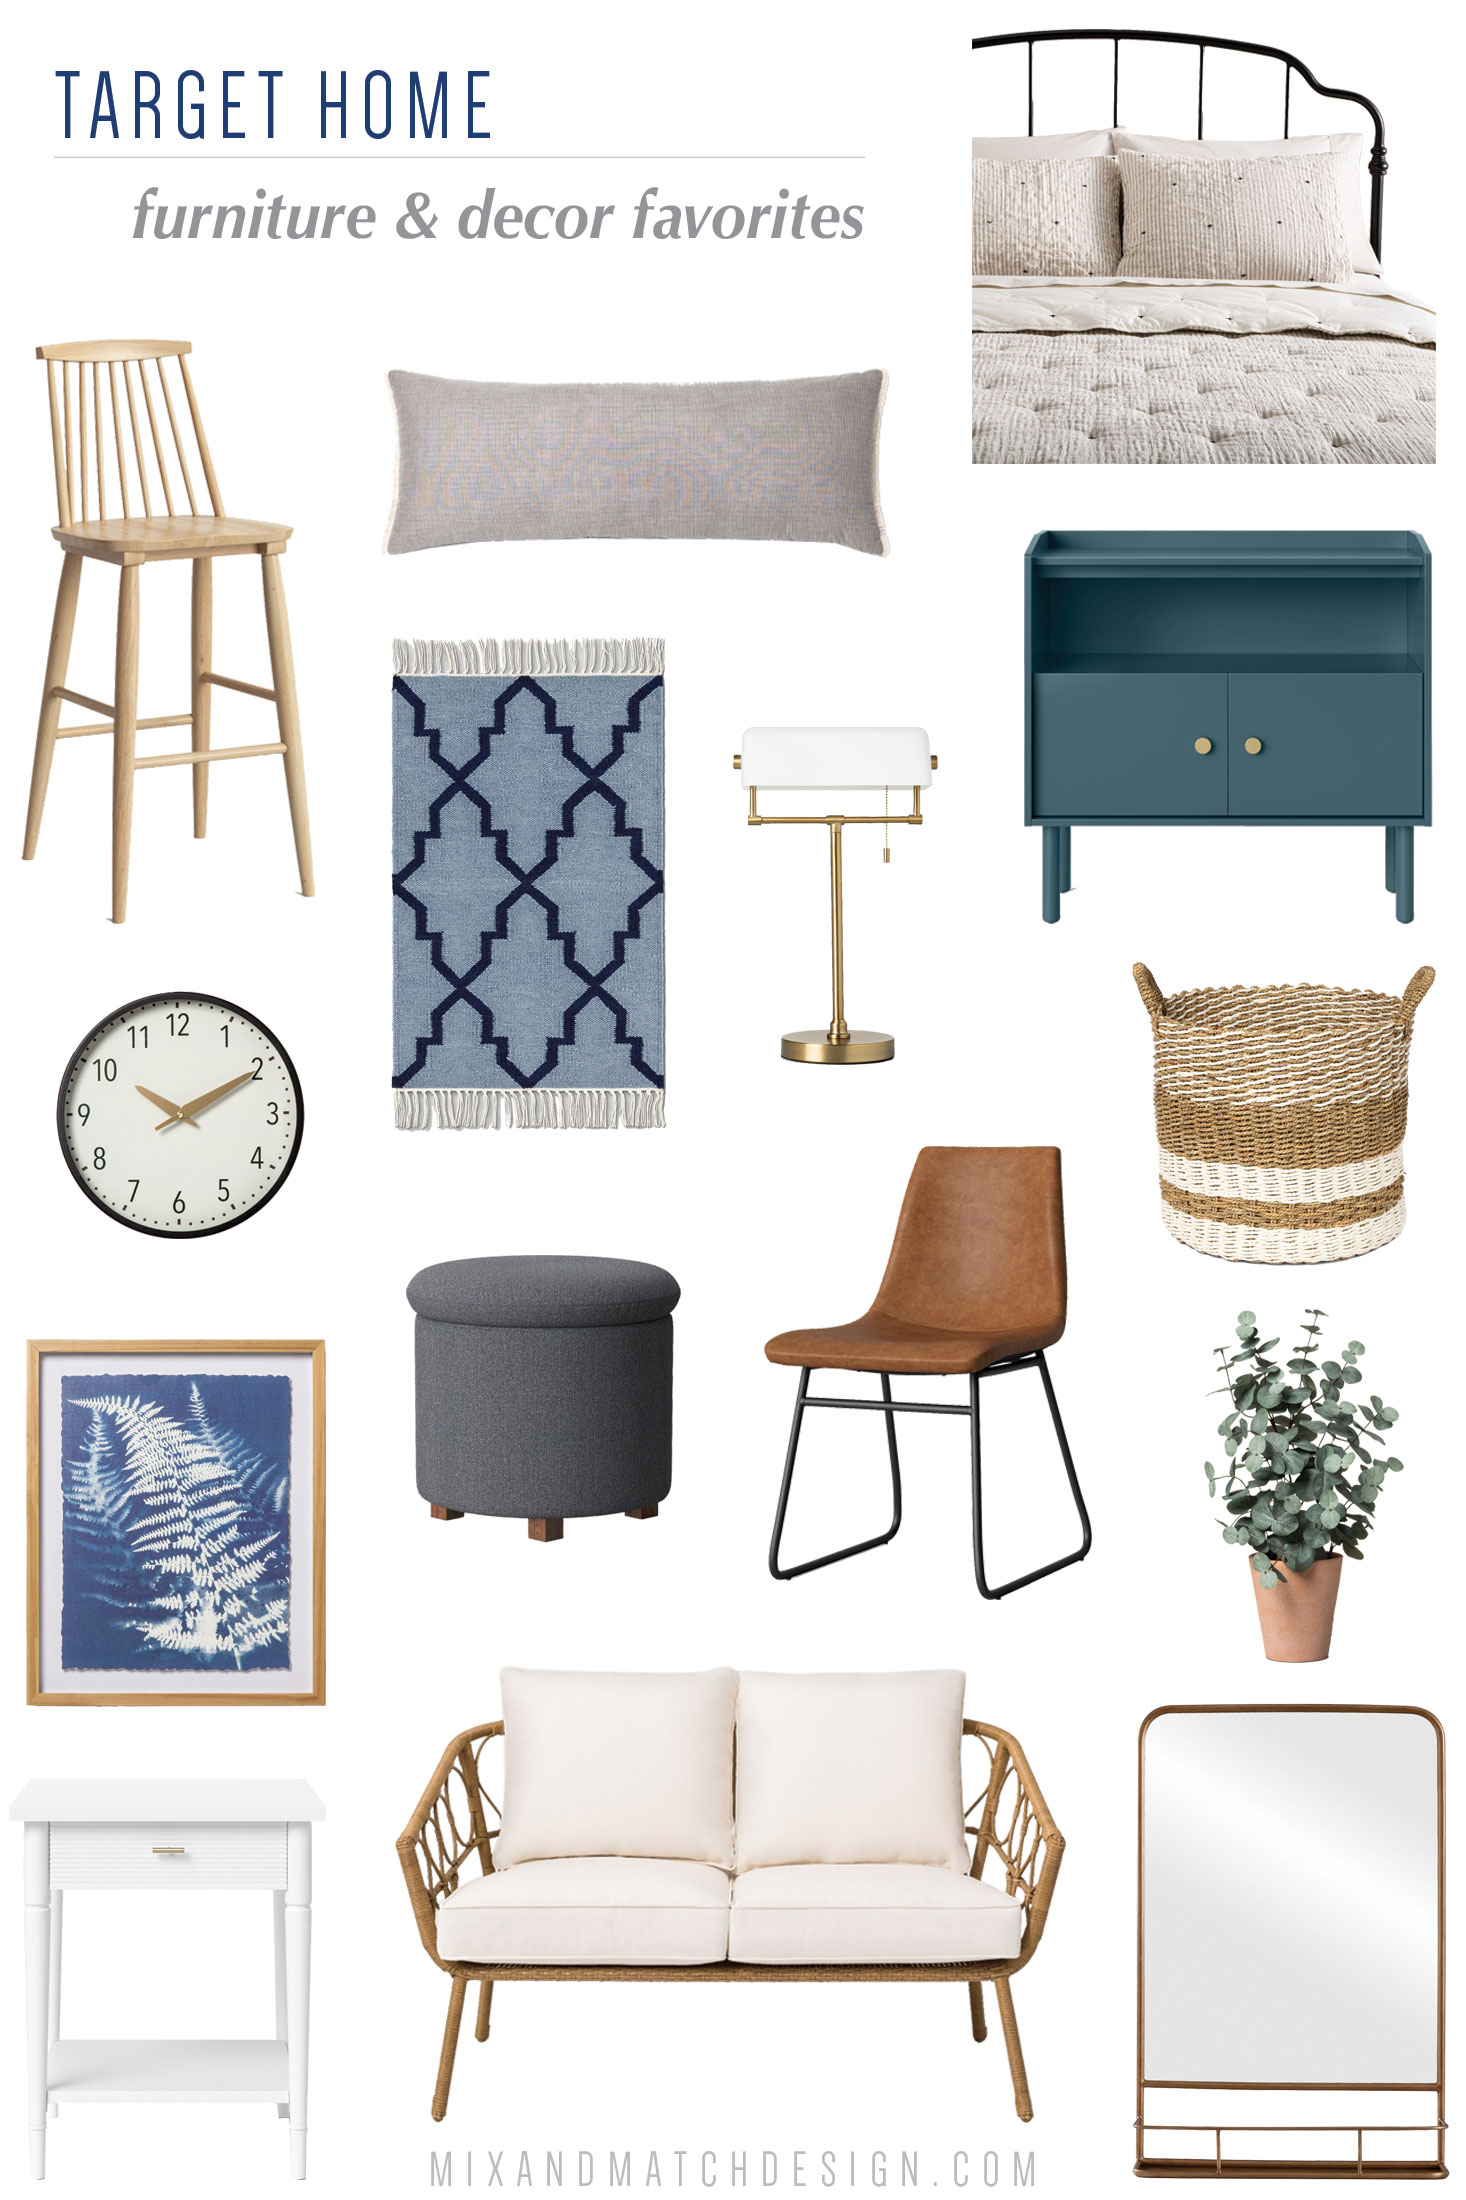 Taking a look back at the top 10 blog posts for Mix & Match Design Company of 2018! Come see what was popular in interior decorating, design tips, e-design projects, and more. One of the categories that made the list? The What Caught My Eye series where I share my favorite finds from retailers with you!